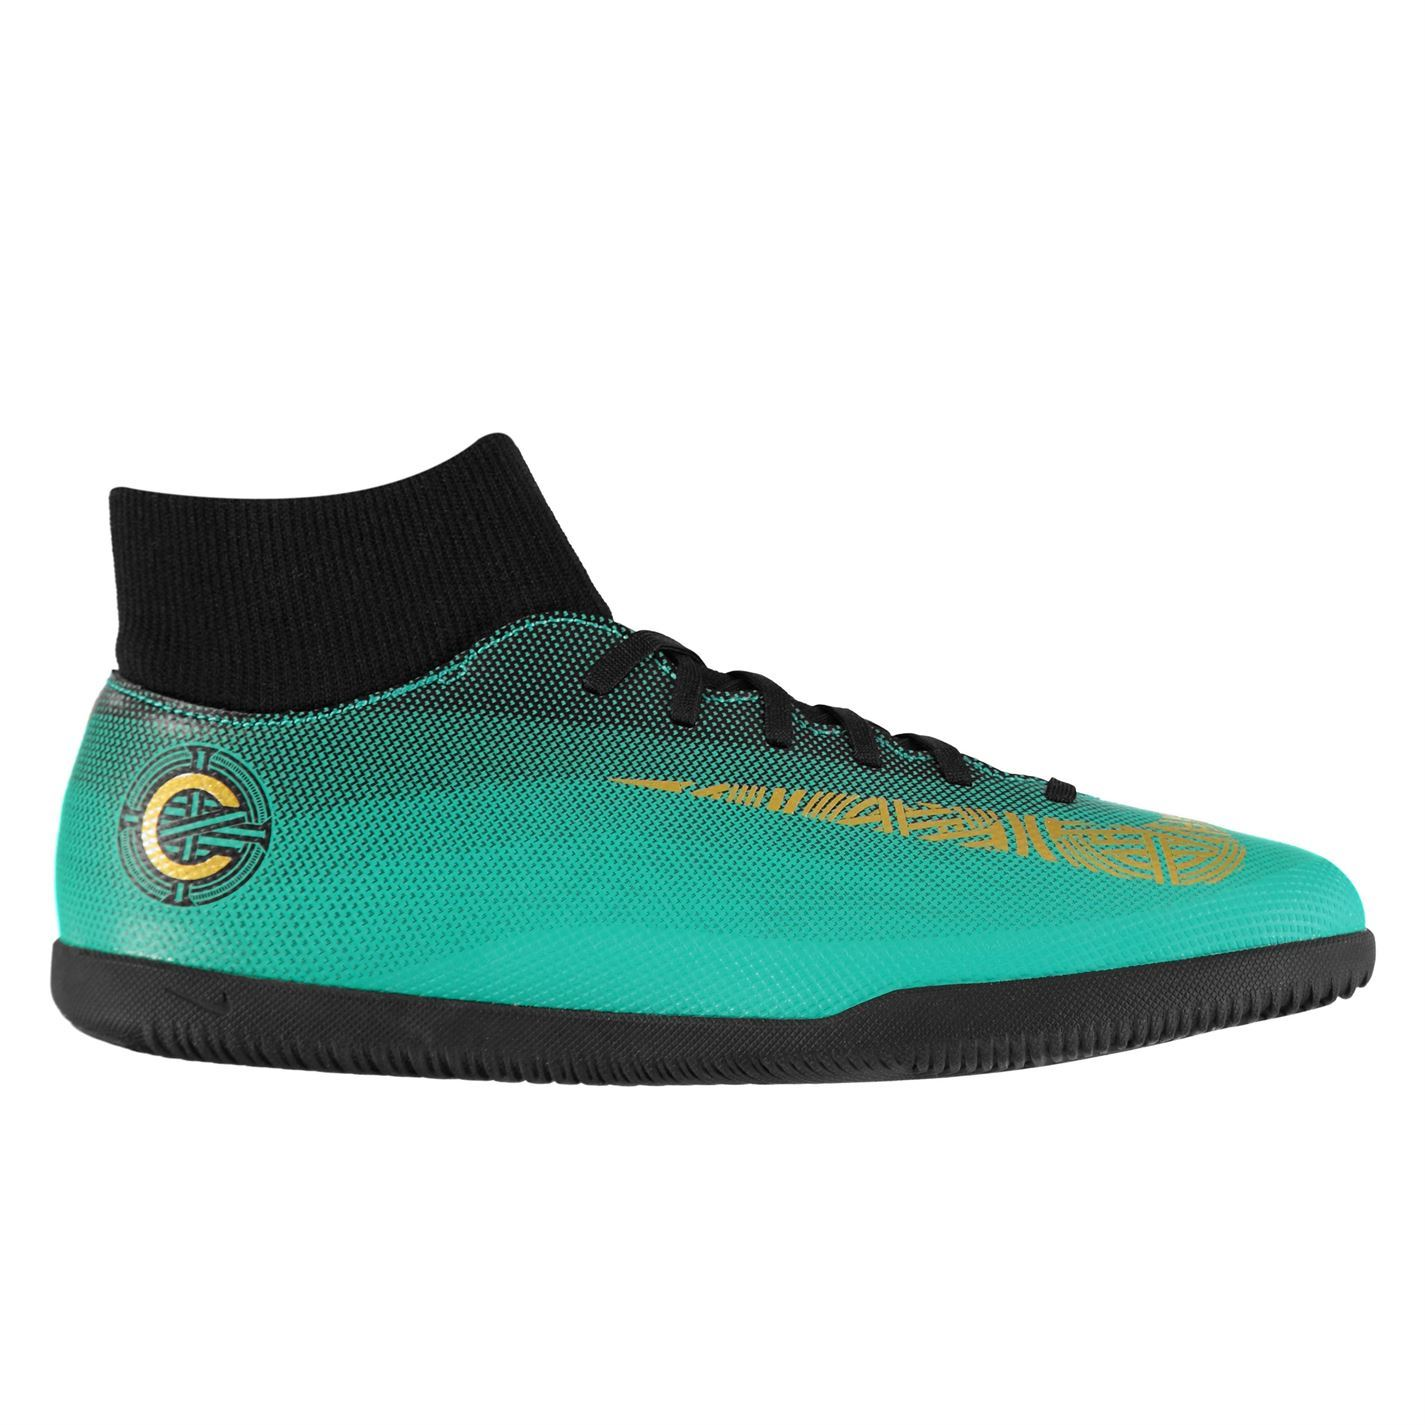 best website fa870 972f2 Nike-Mercurial-Superfly-Club-CR7-DF-Indoor-Football-